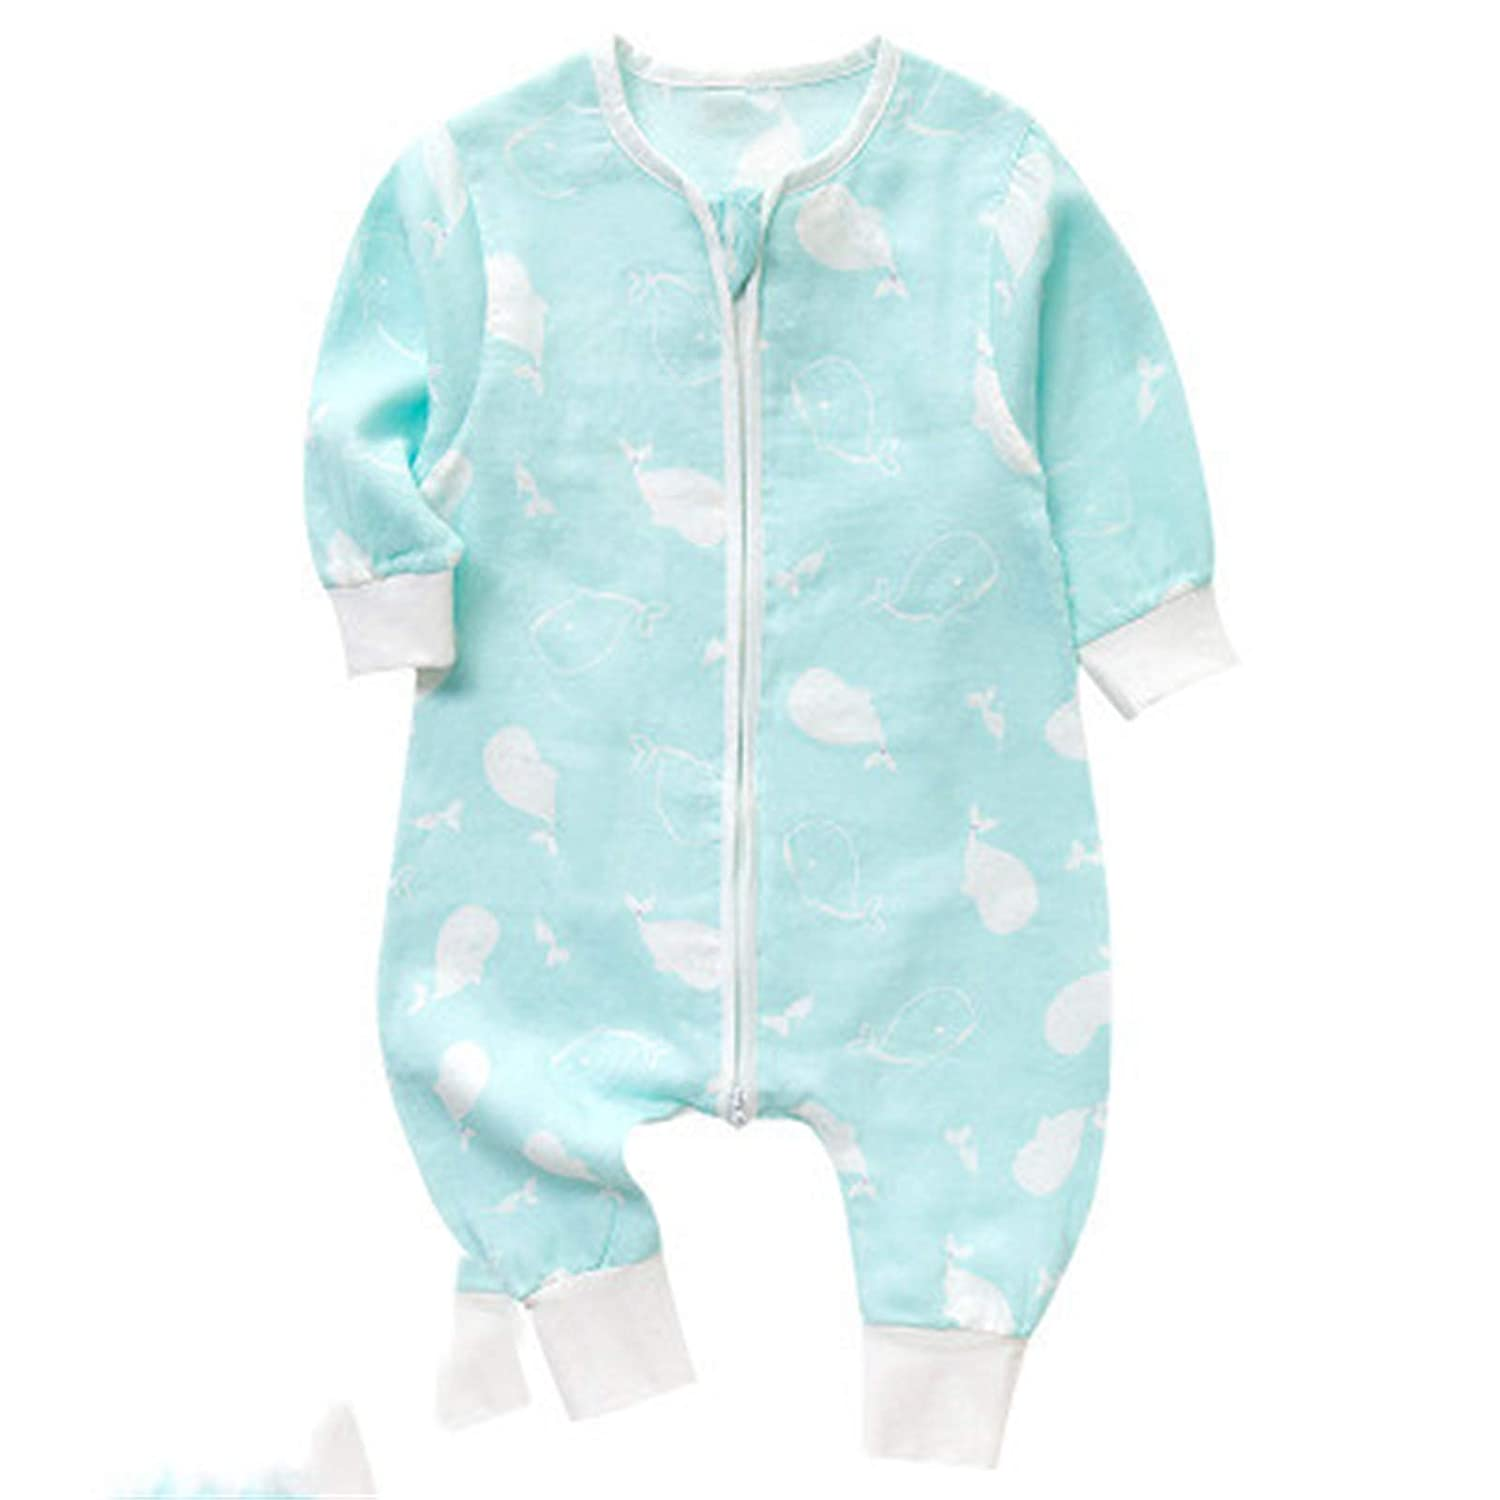 Elonglin Unisex Baby Jumpsuit Long Sleeve Cotton Romper Pajama Playsuit Outfit